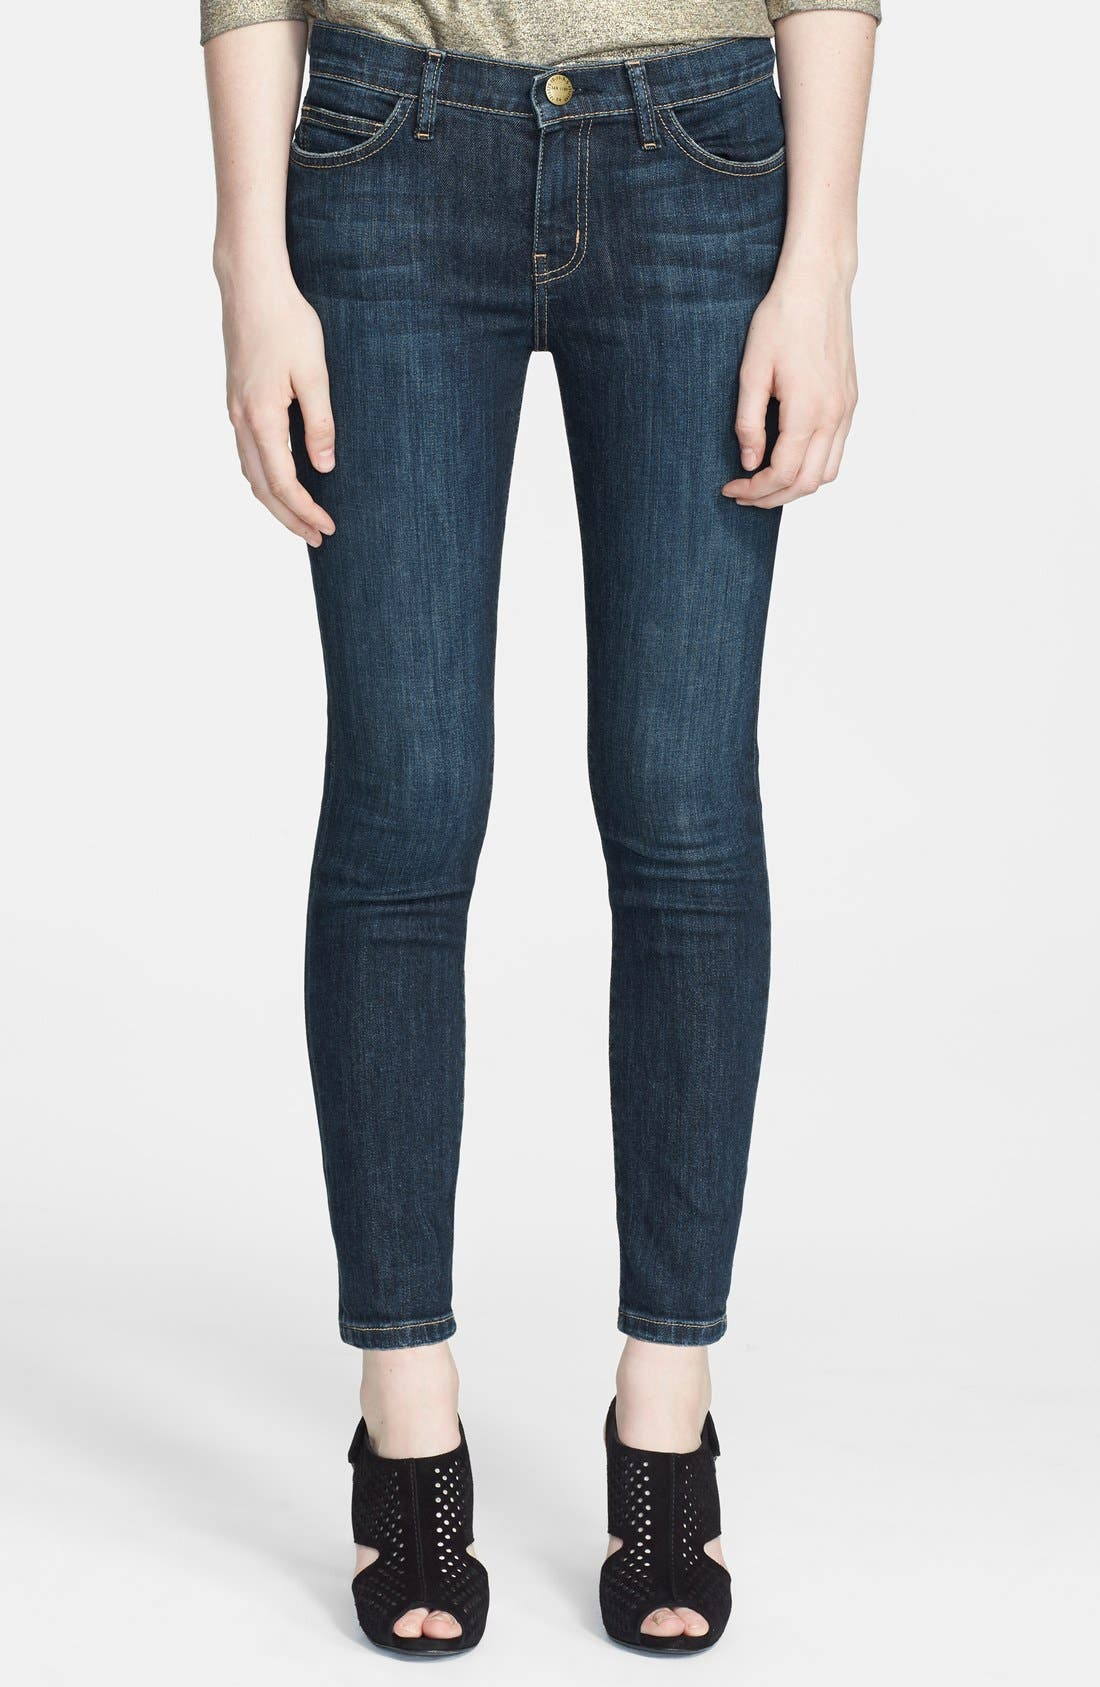 Alternate Image 1 Selected - Current/Elliott 'The Stiletto' Skinny Jeans (Alumni)